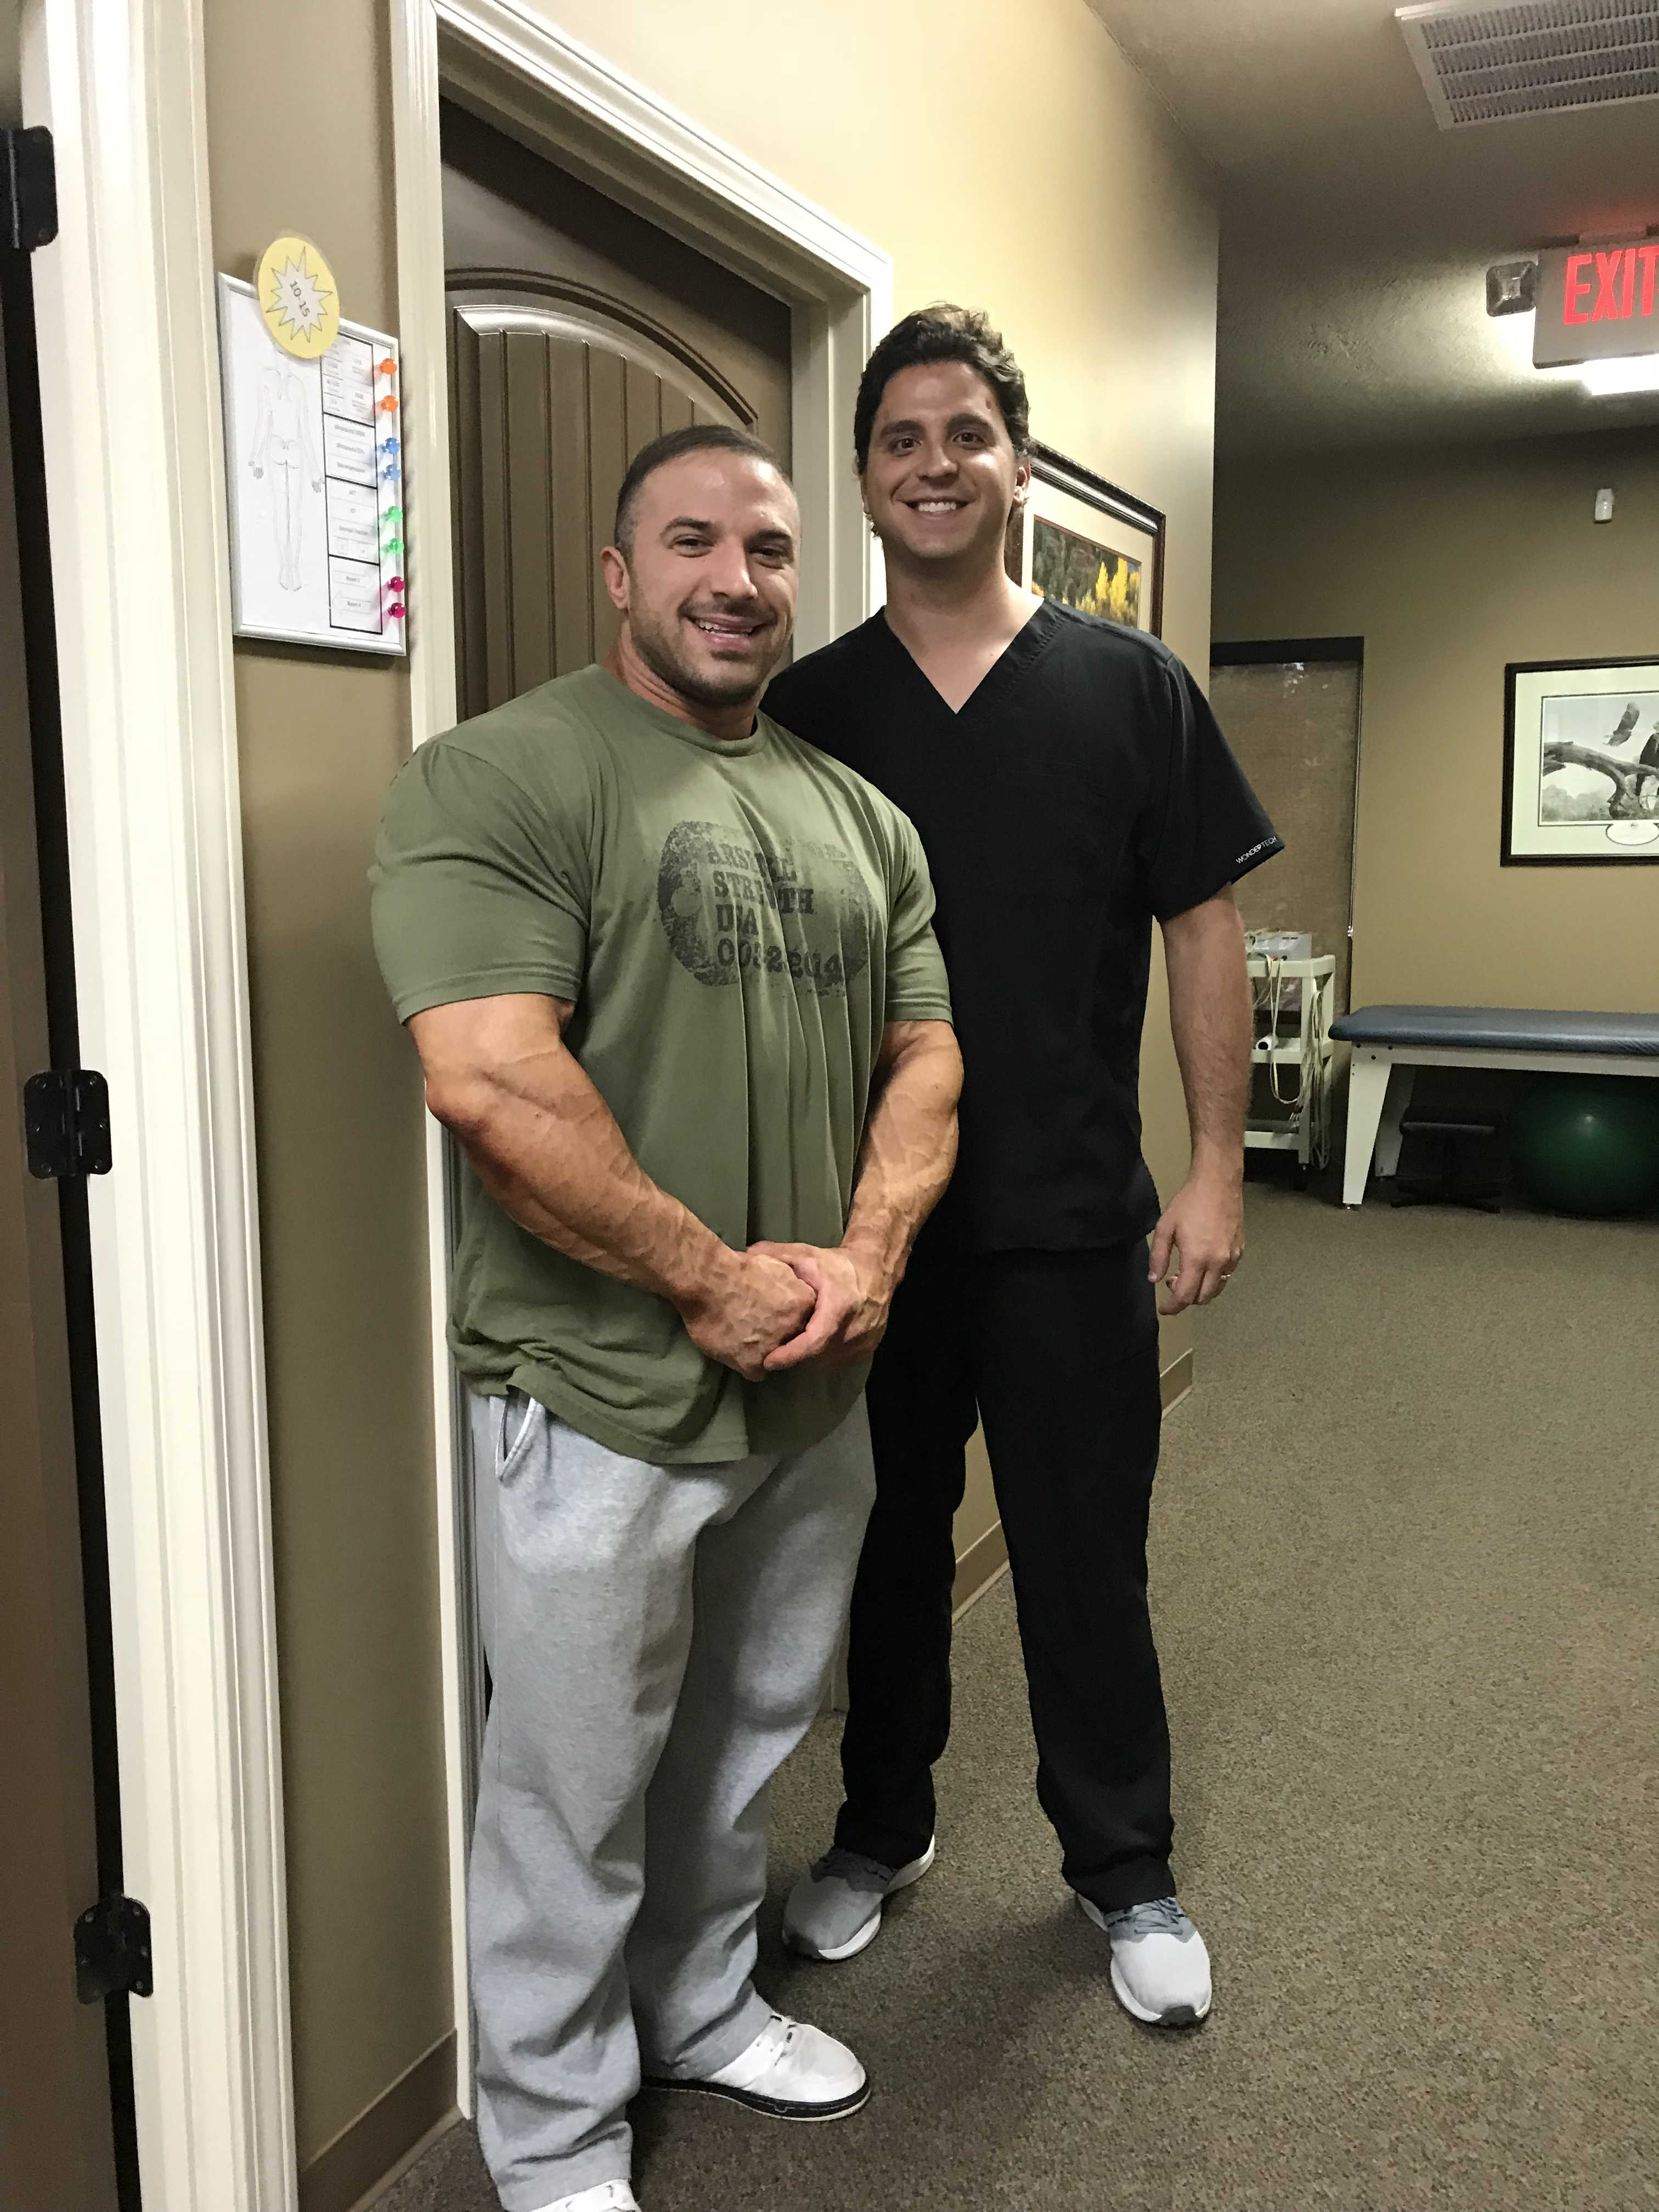 Dr. Jake and Turner Riddle